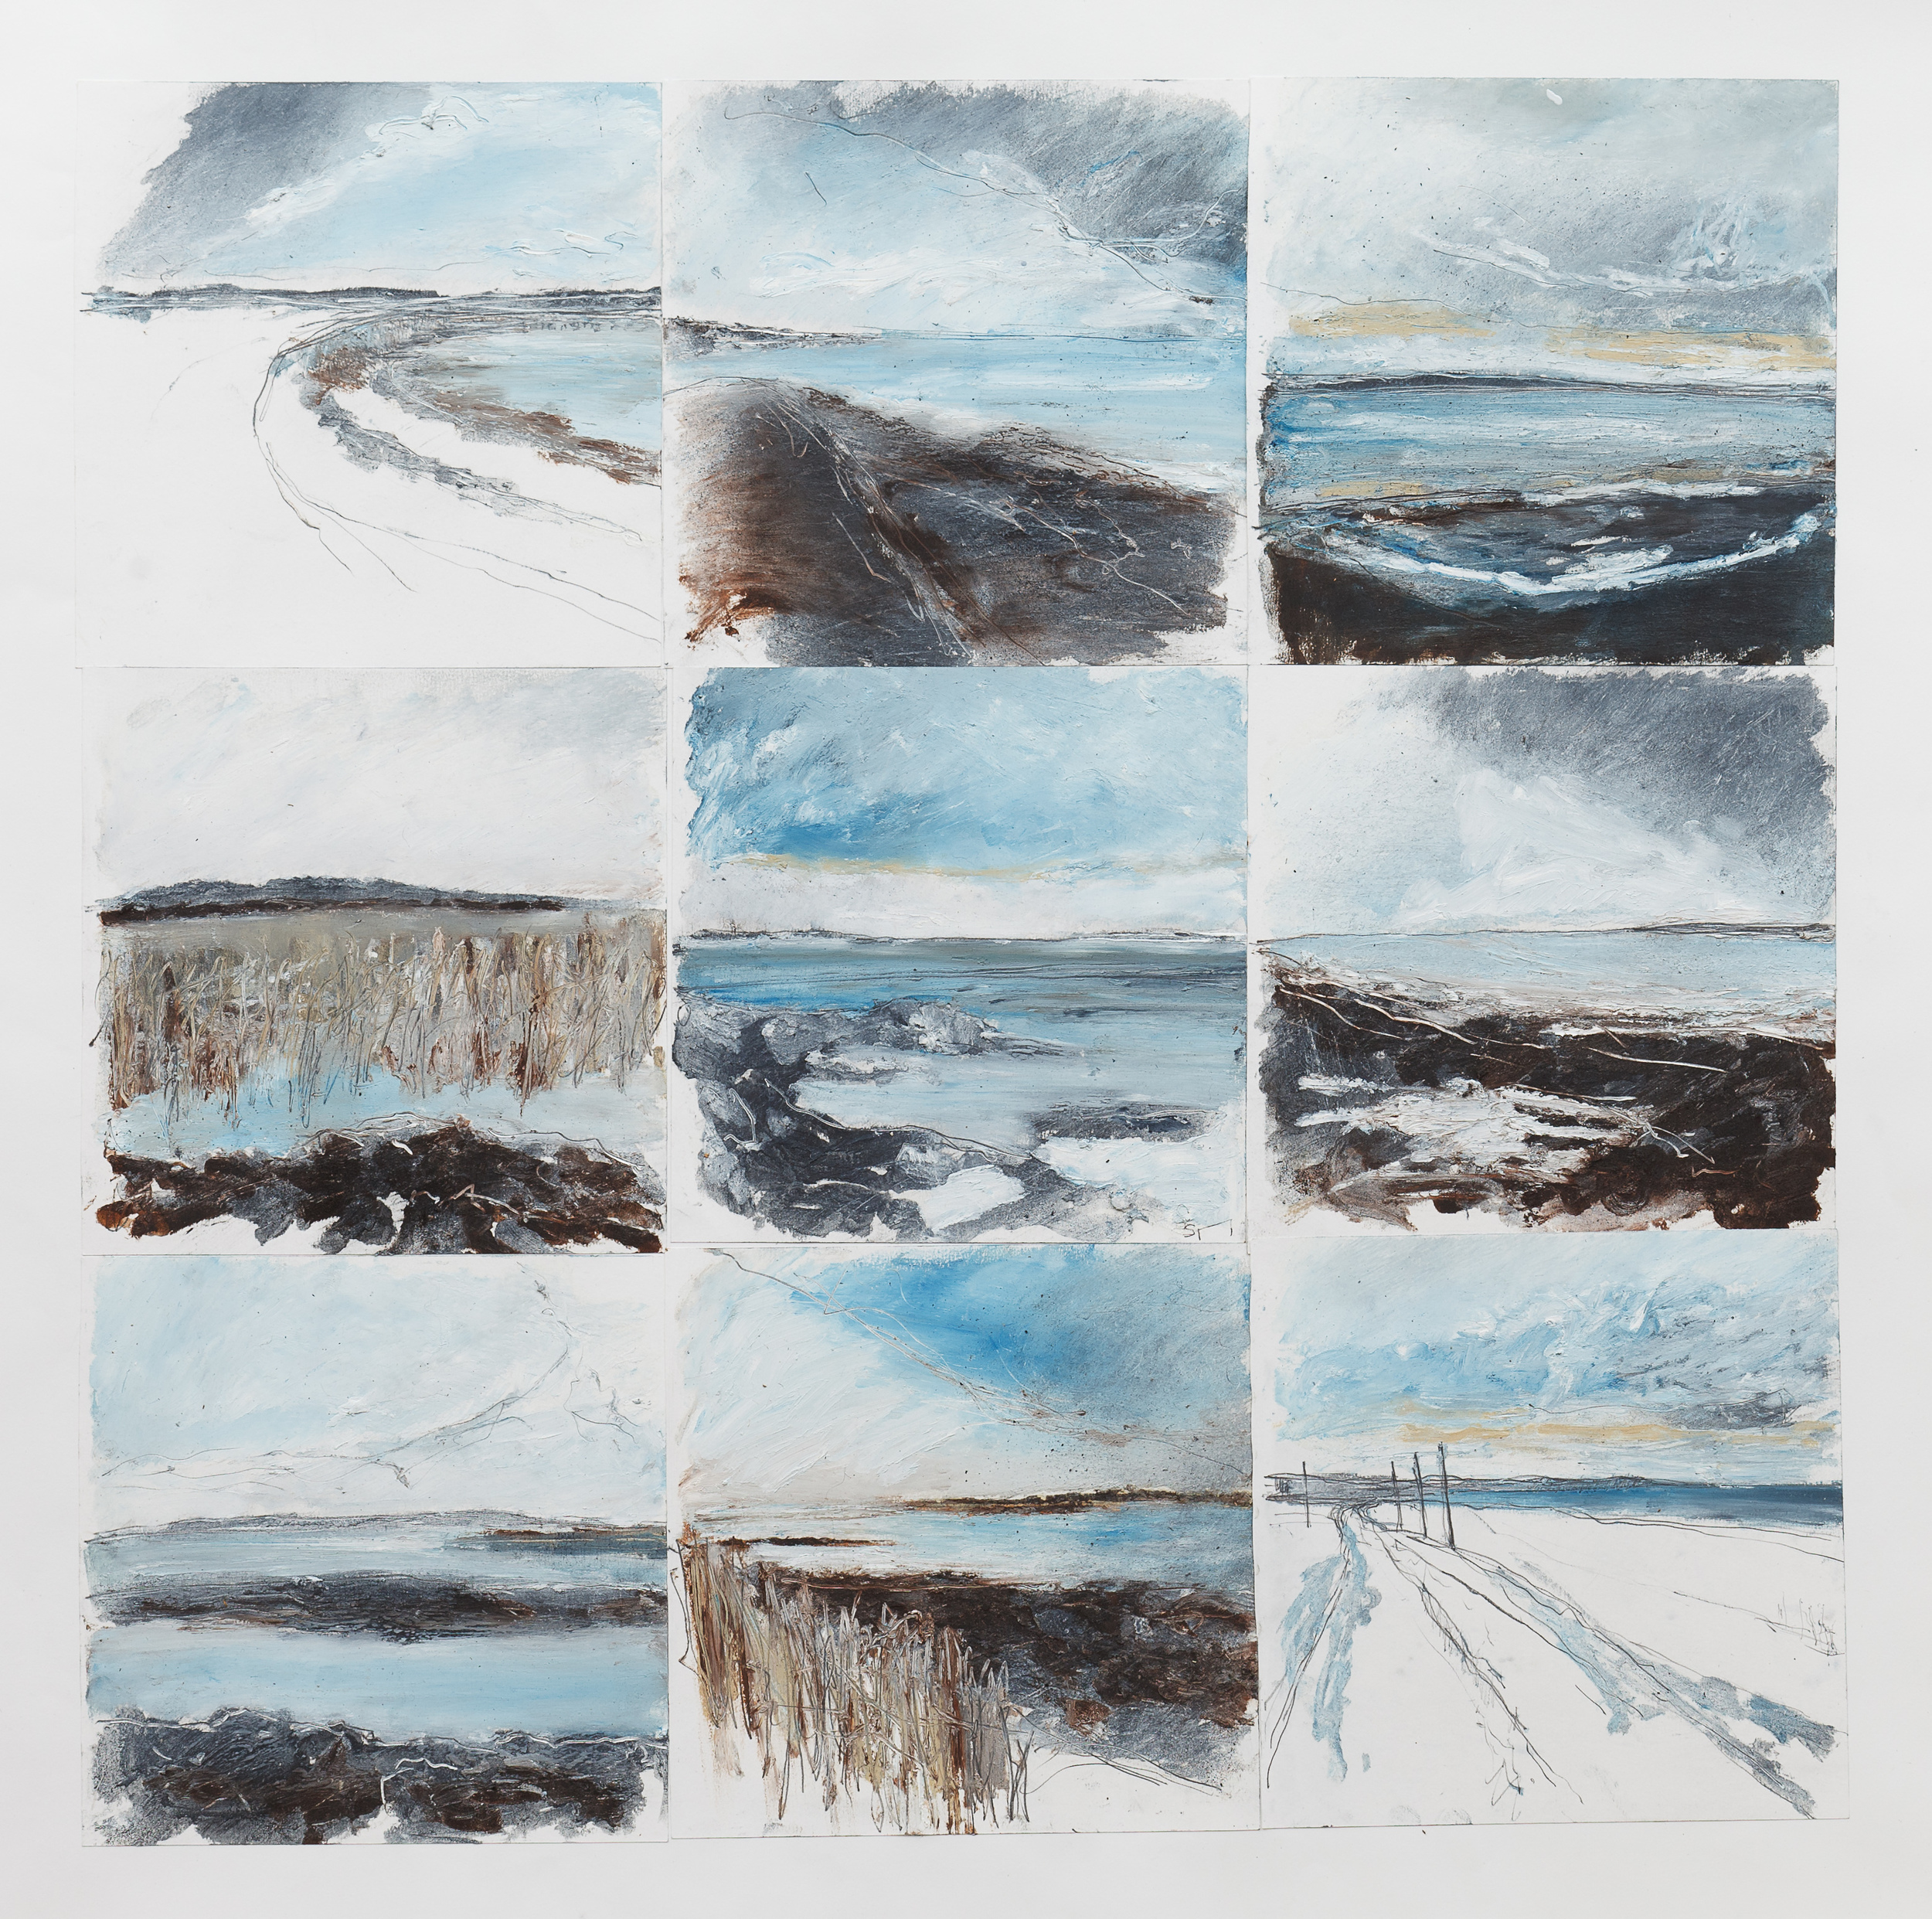 Lindisfarne Drawing montage Mixed media on paper 60x60cm